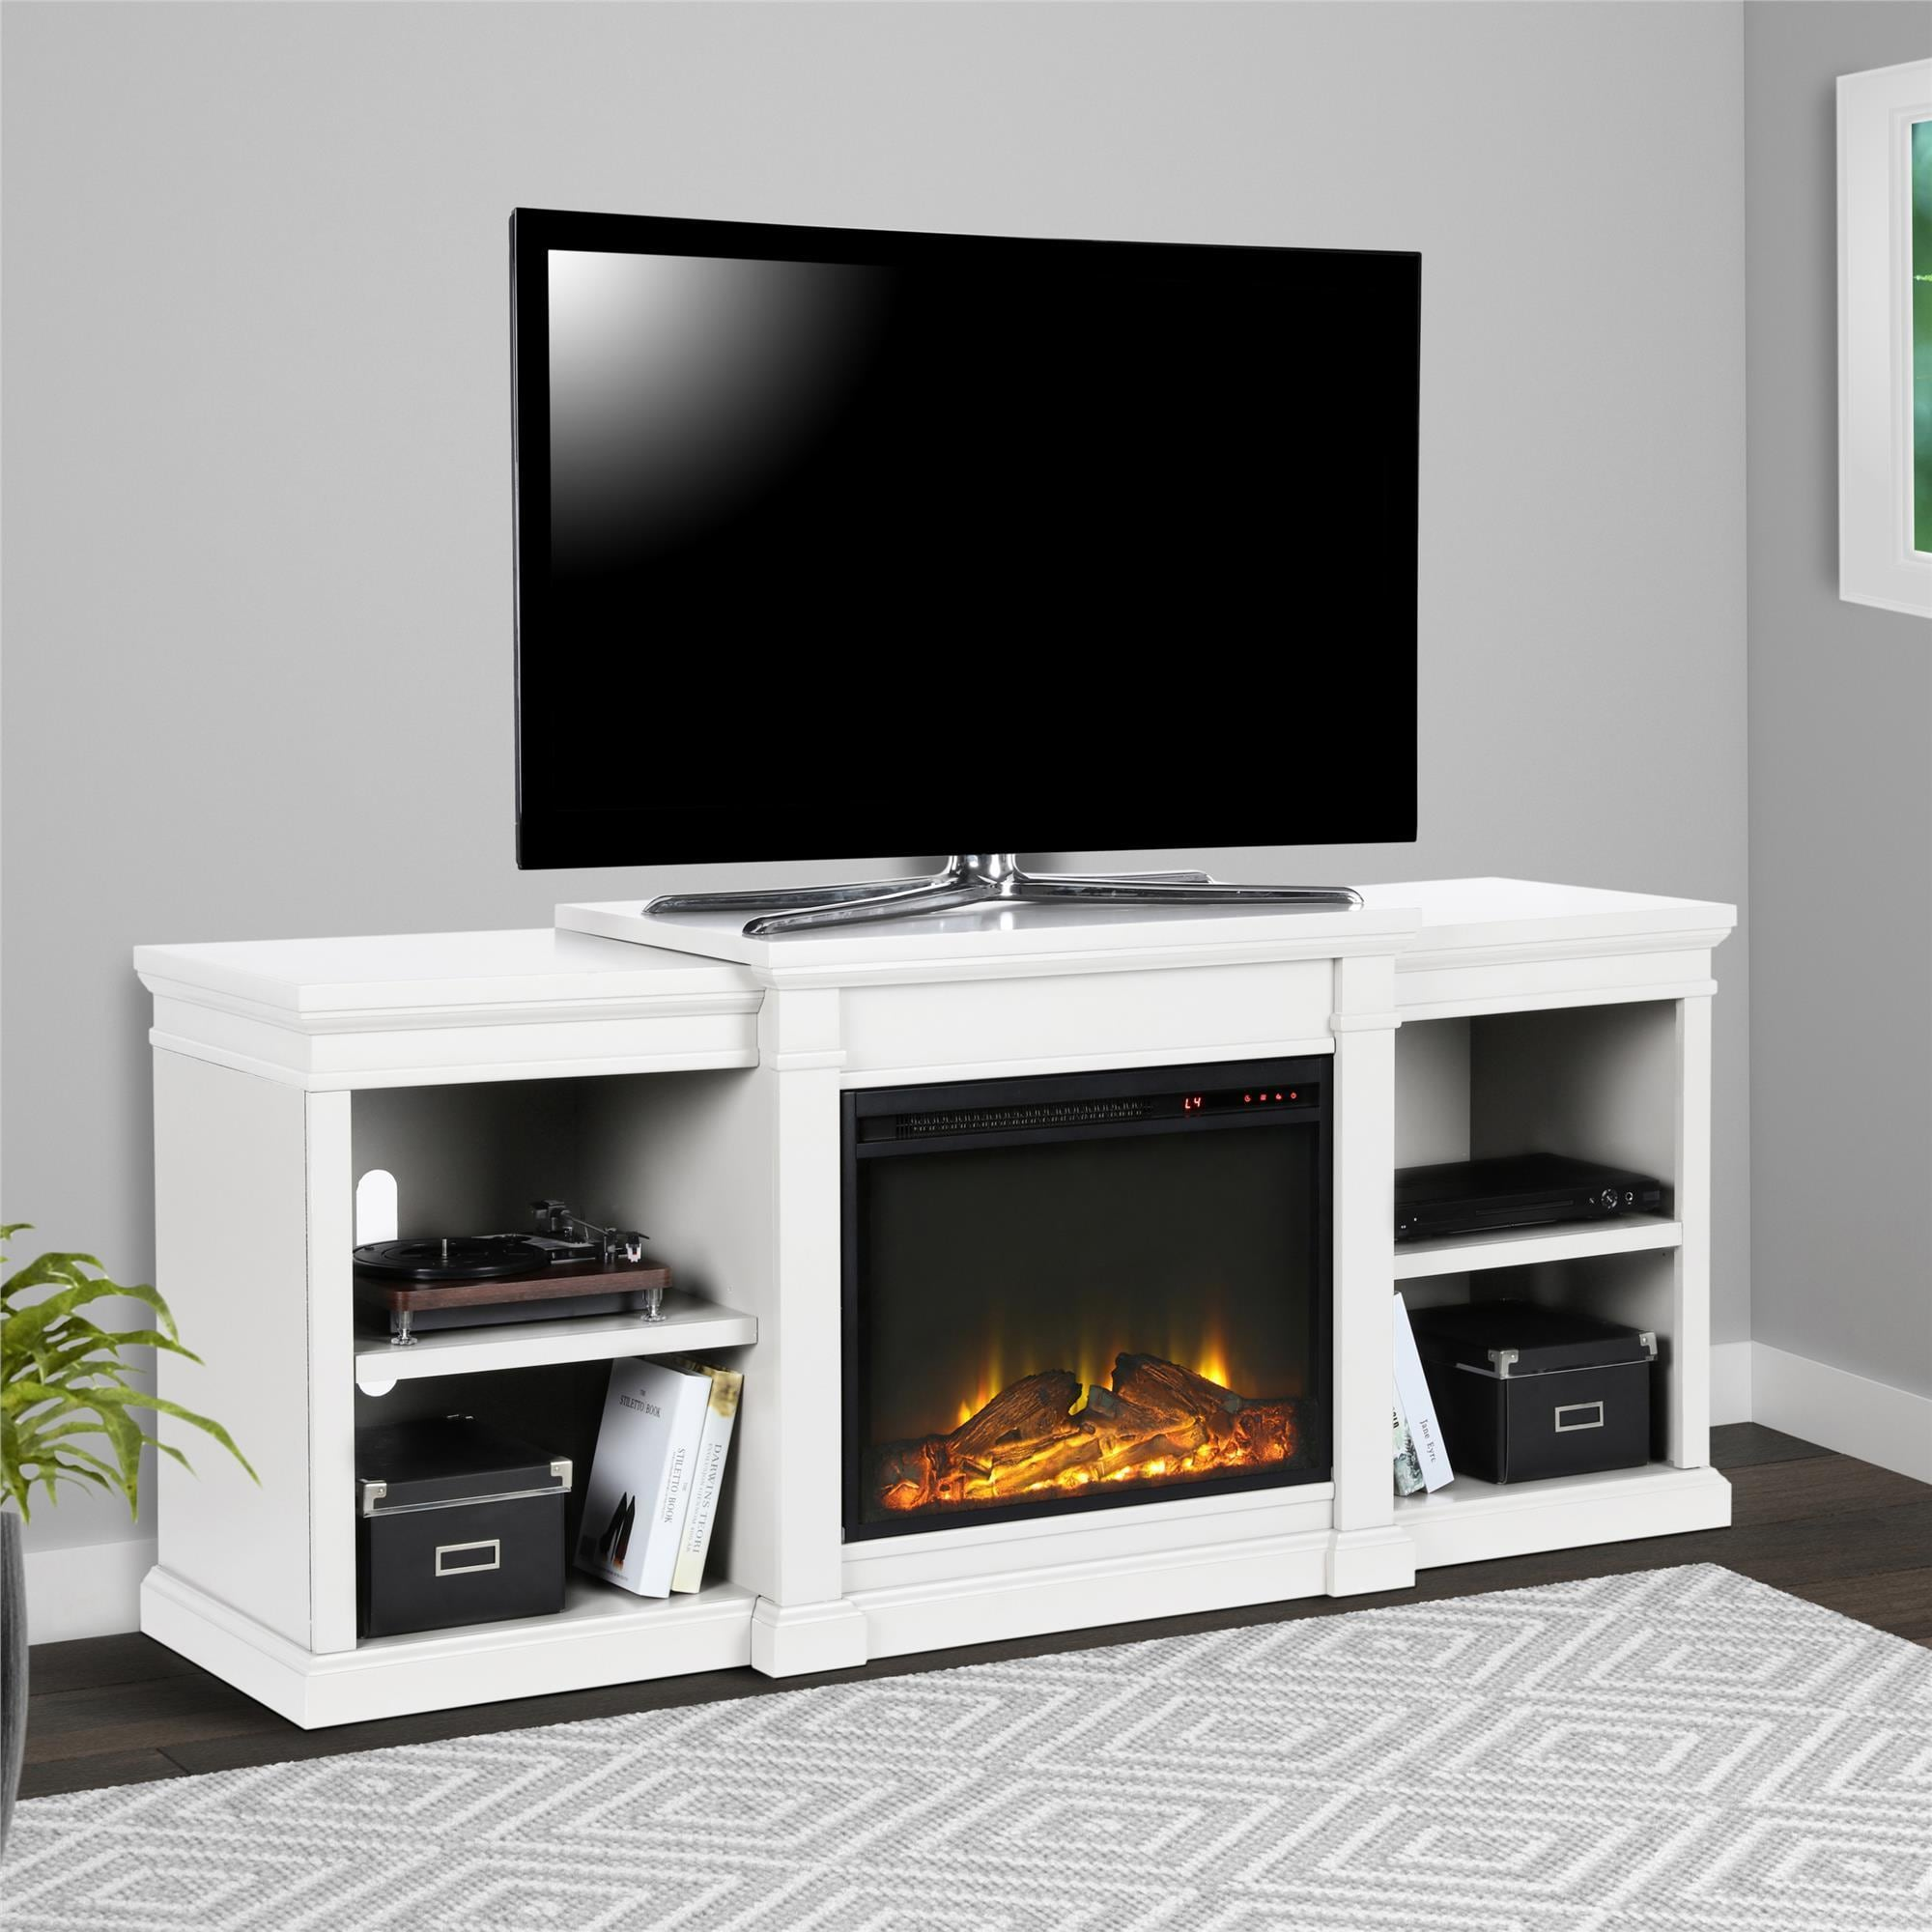 Shop Avenue Greene Anderson Electric Fireplace Tv Stand For Tvs Up